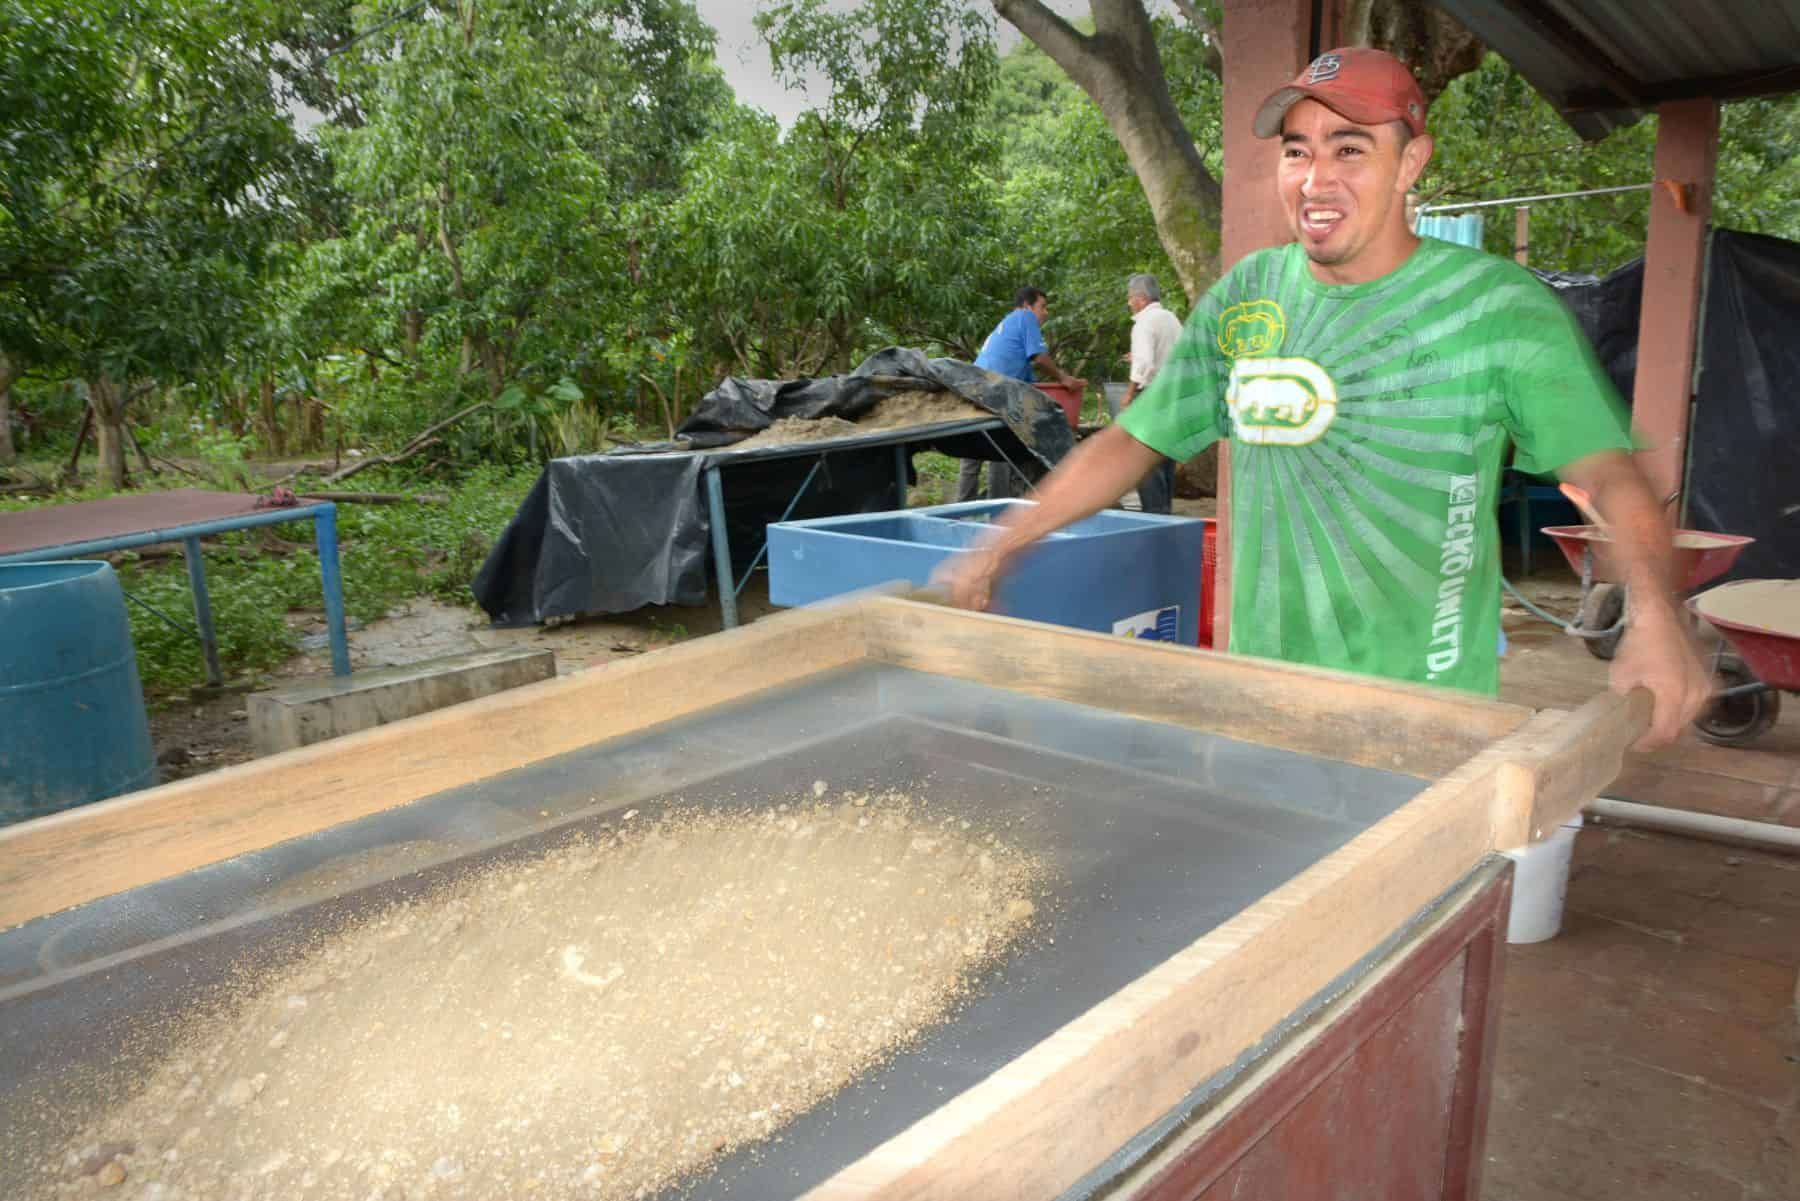 BioSand Filter recipient Dimas sifts the sand that is a key component of BioSand Filters.